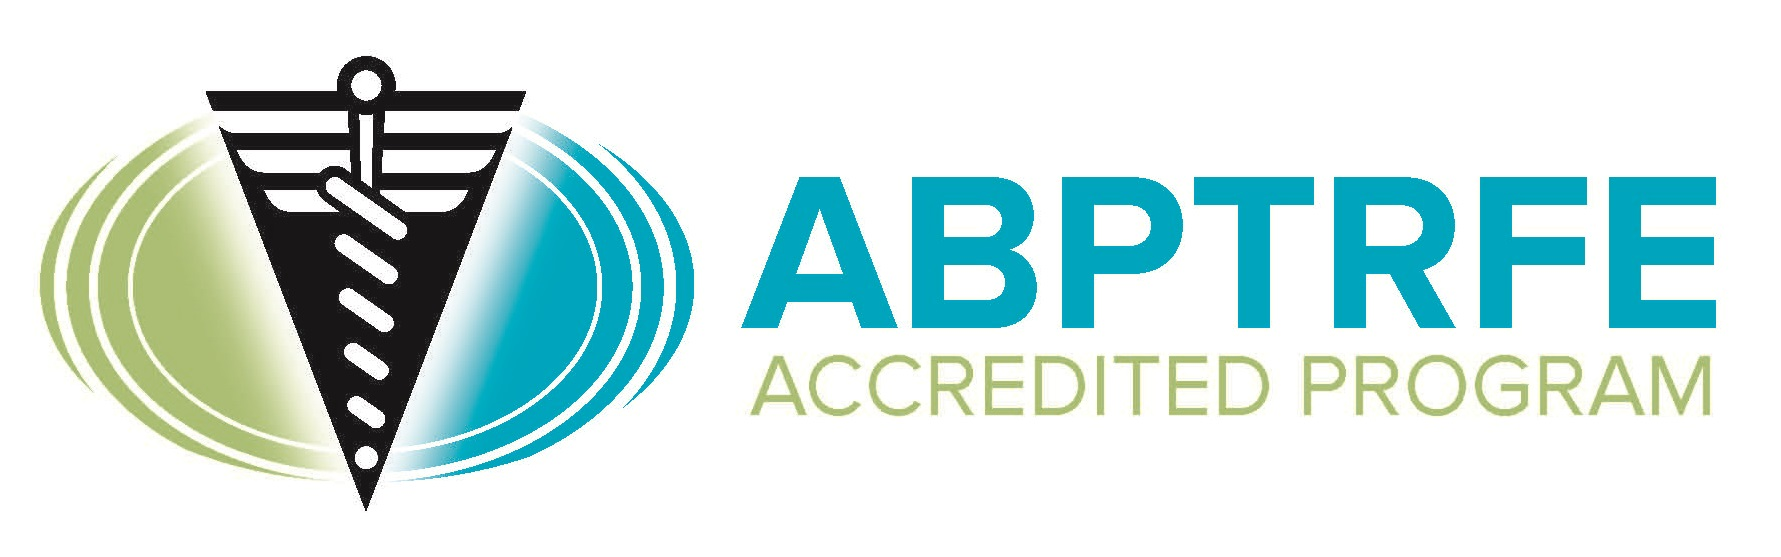 Accredited by the American Physical Therapy Association